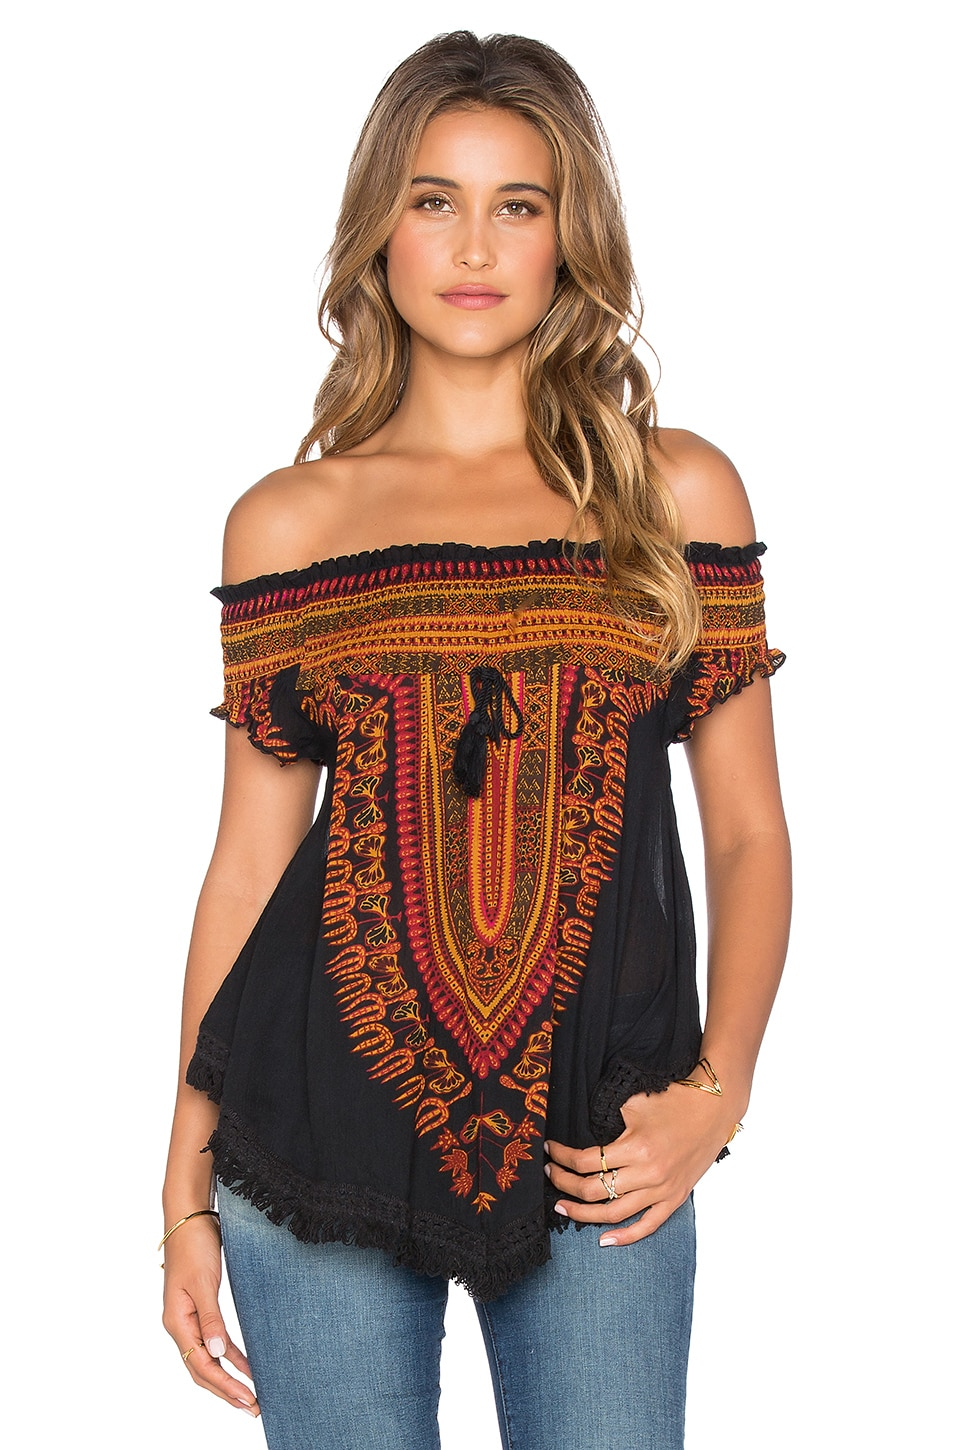 Band of Gypsies Patterned Off Shoulder Top in Black & Red & Gold